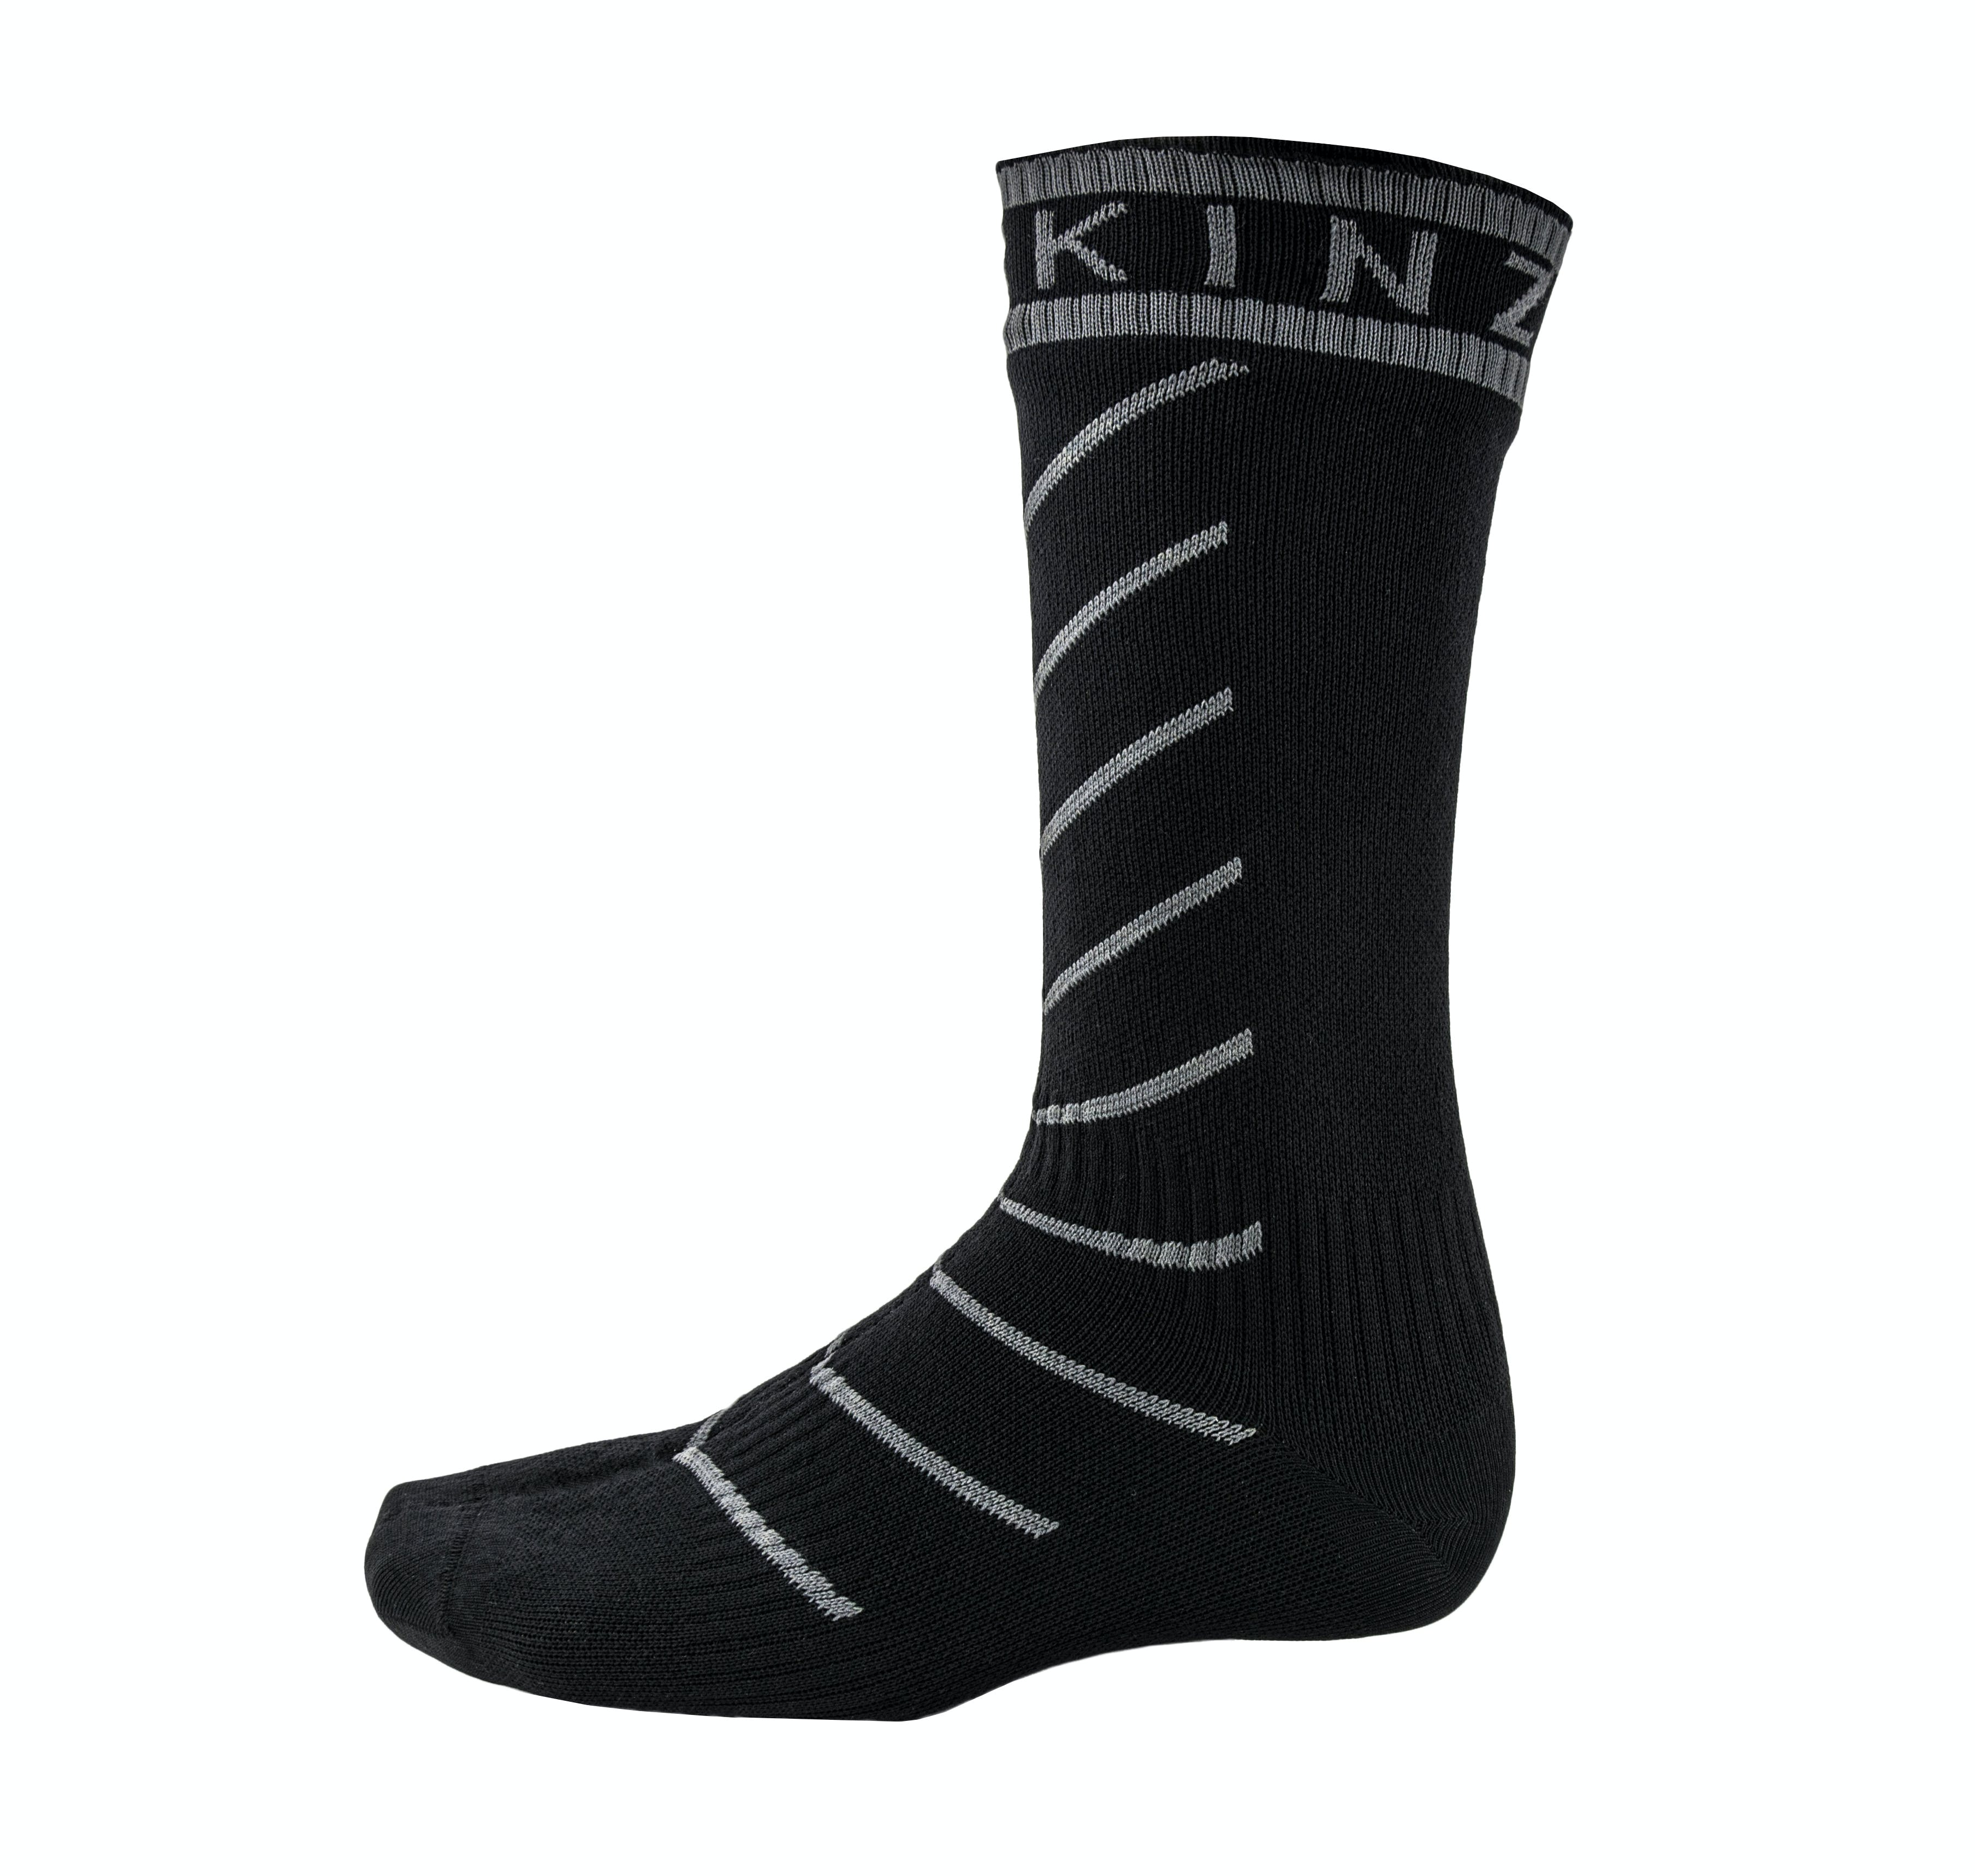 Waterproof Super Thin Pro Mid Socks with Hydrostop